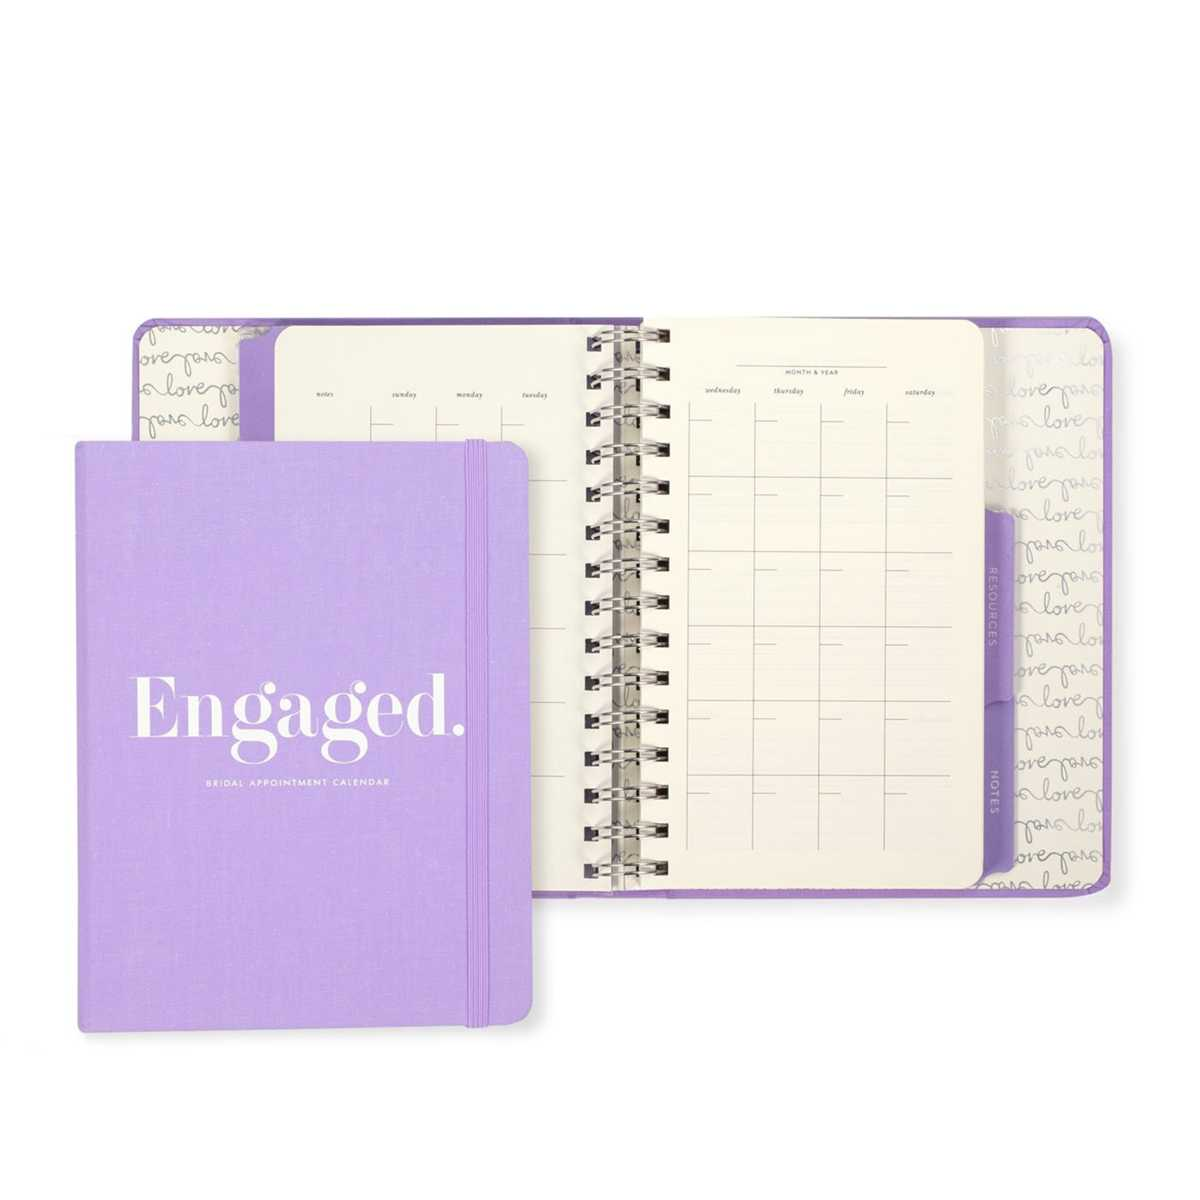 Bridal Appointment Calendar by Kate Spade New York